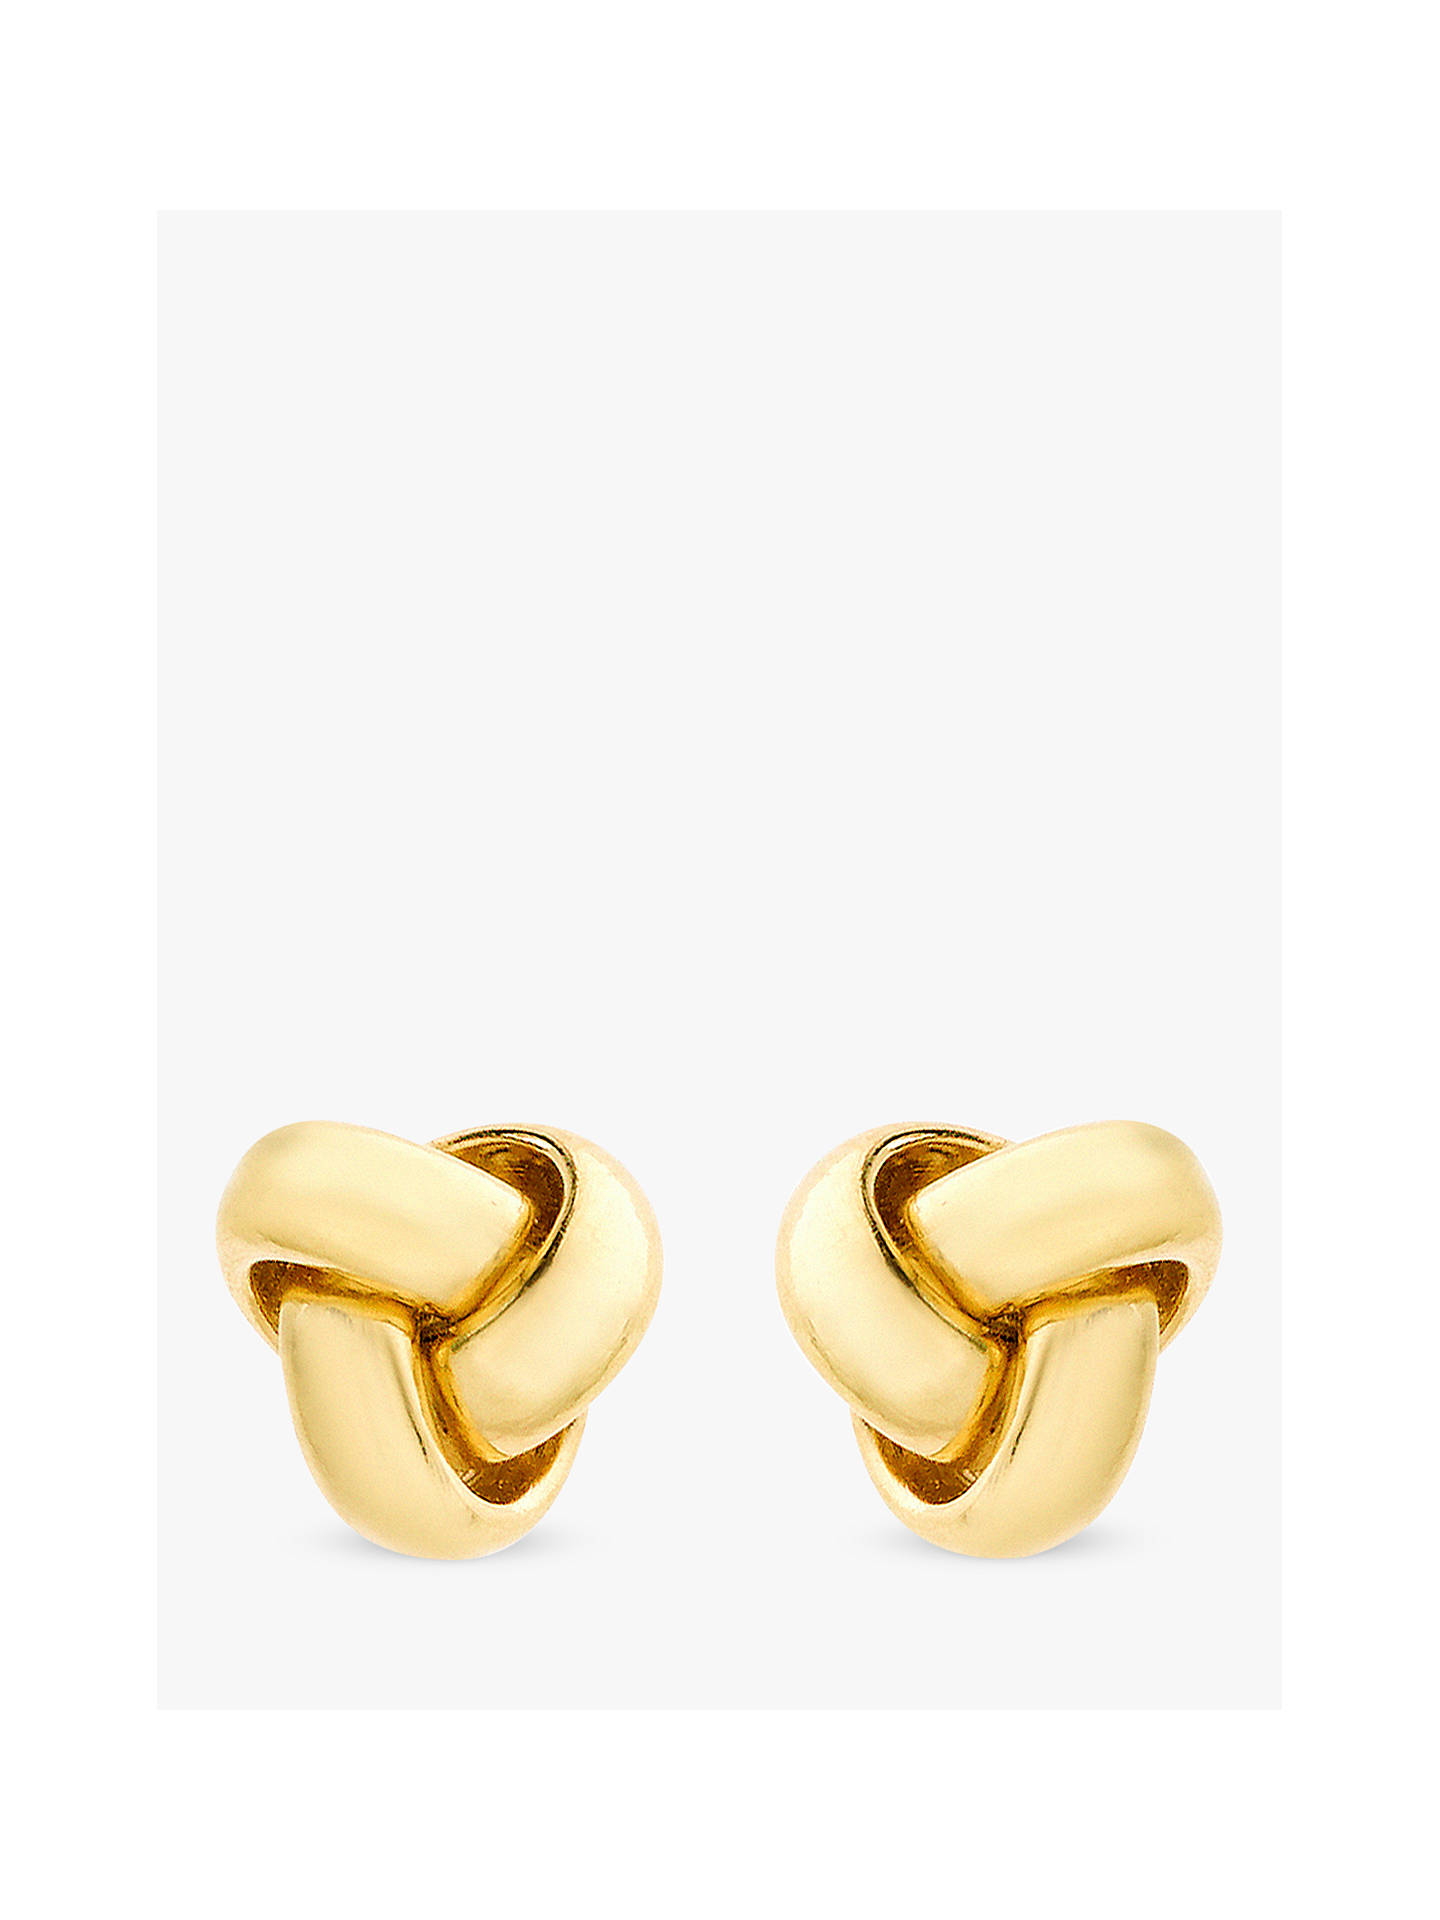 c66aa1a65 Buy IBB 9ct Gold 8mm Knot Stud Earrings, Gold Online at johnlewis.com ...